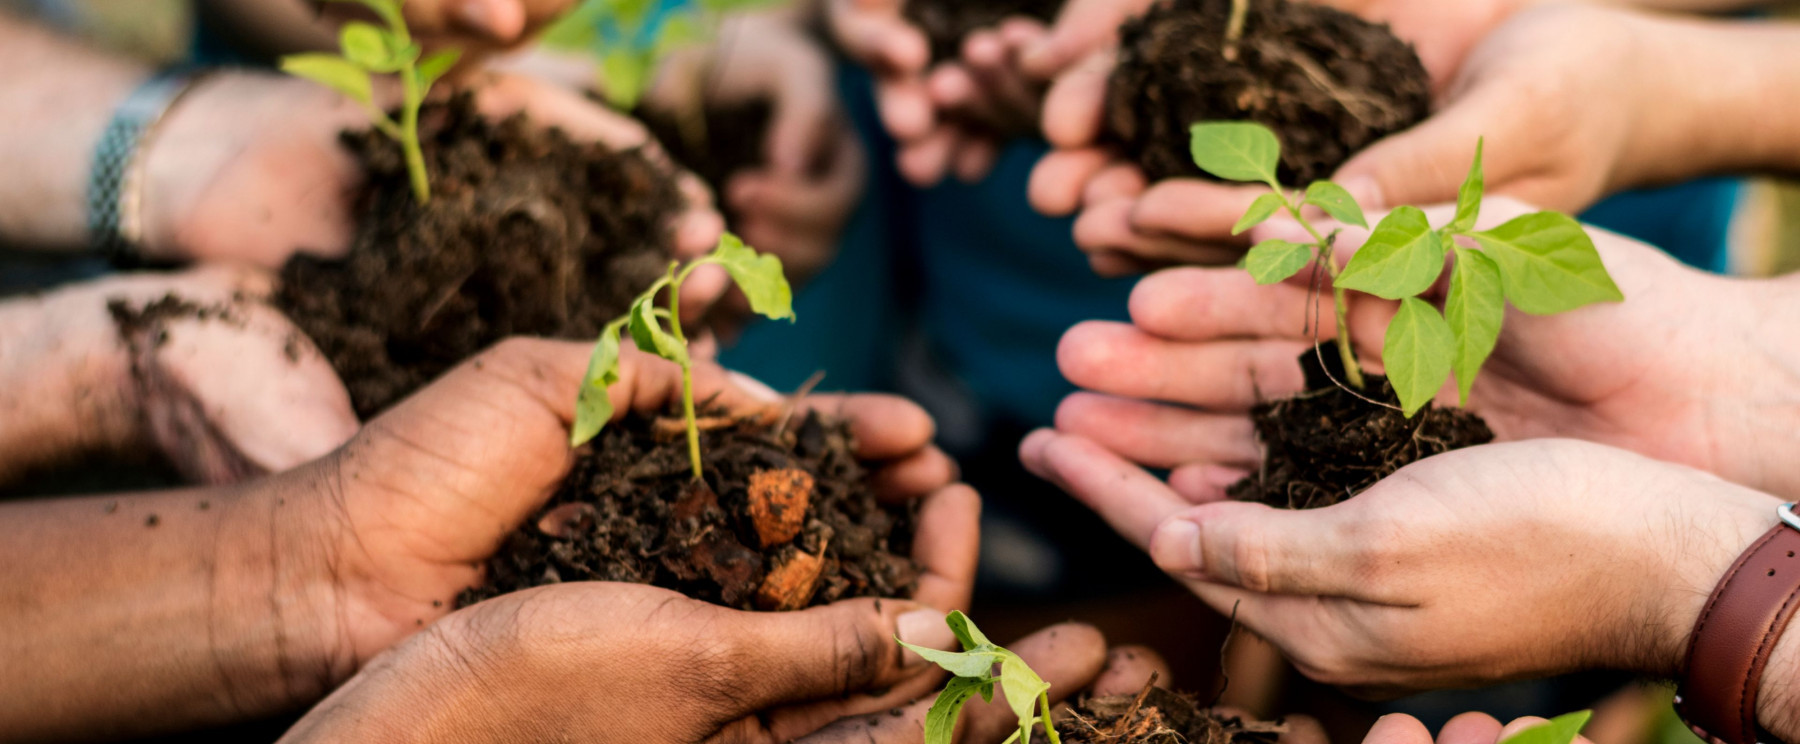 Hands in a circle holding dirt and sprouted plant